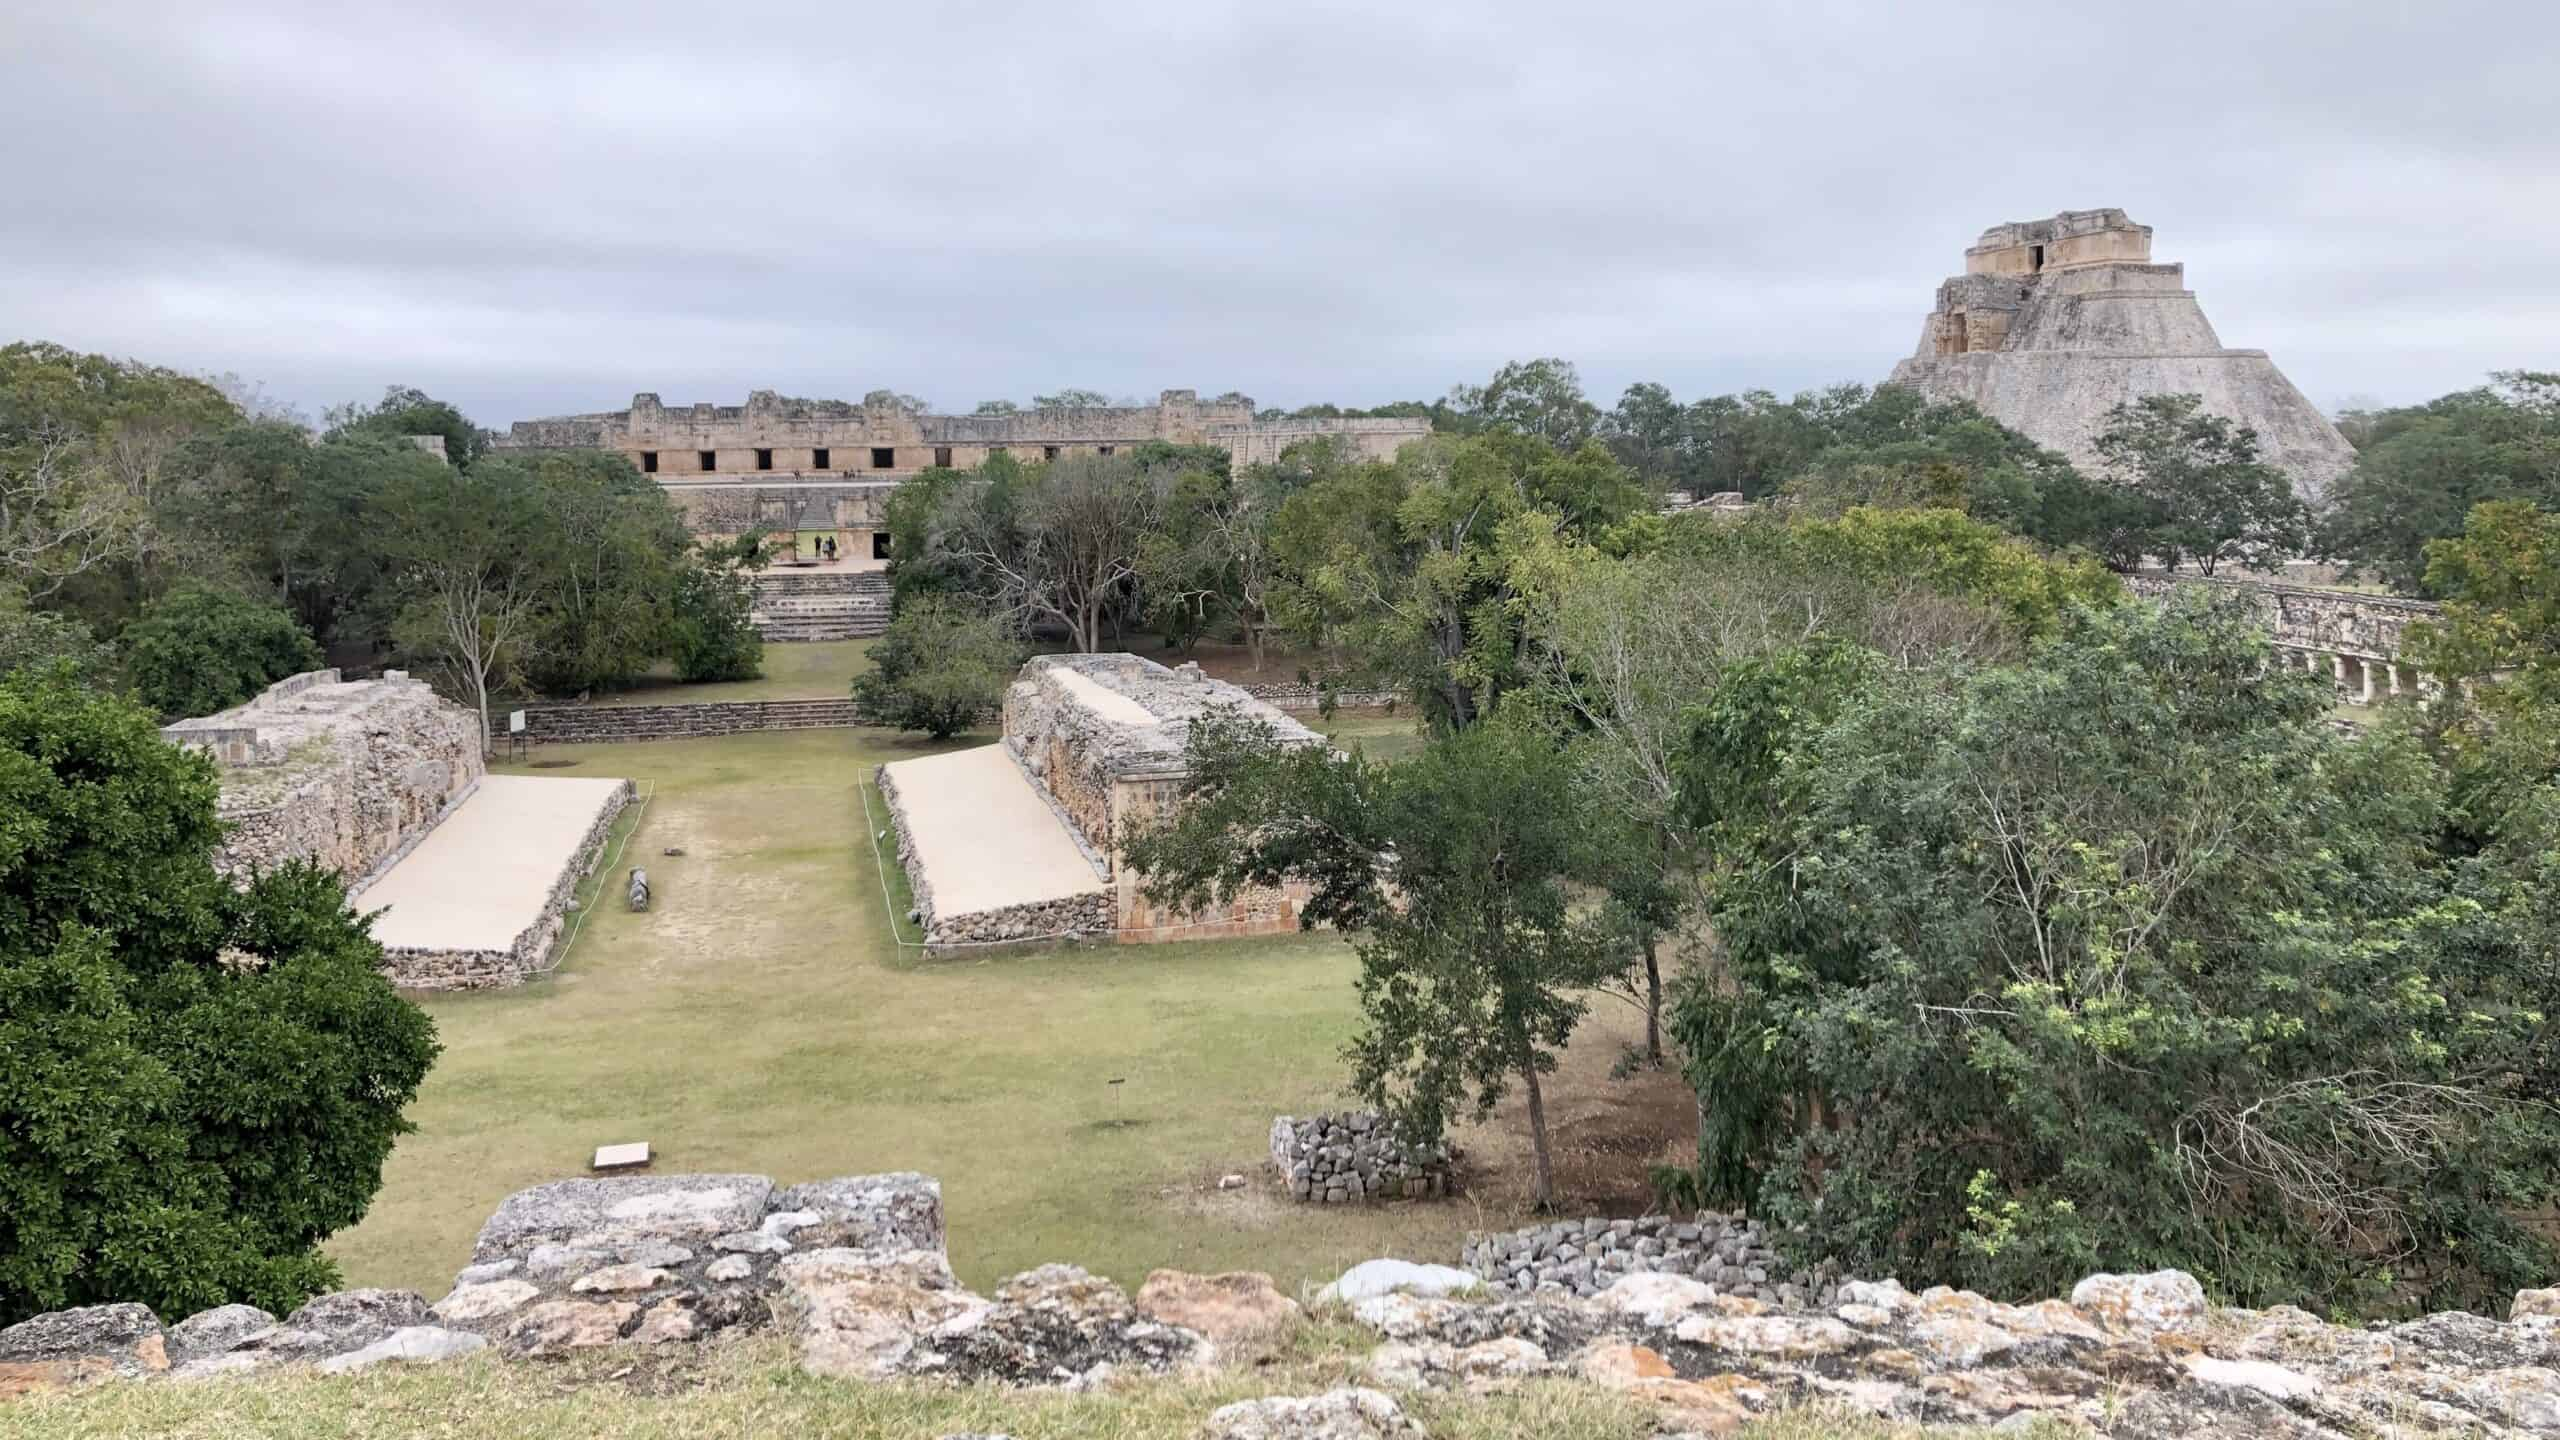 Uxmal site showing ball court and pyramid in the distance